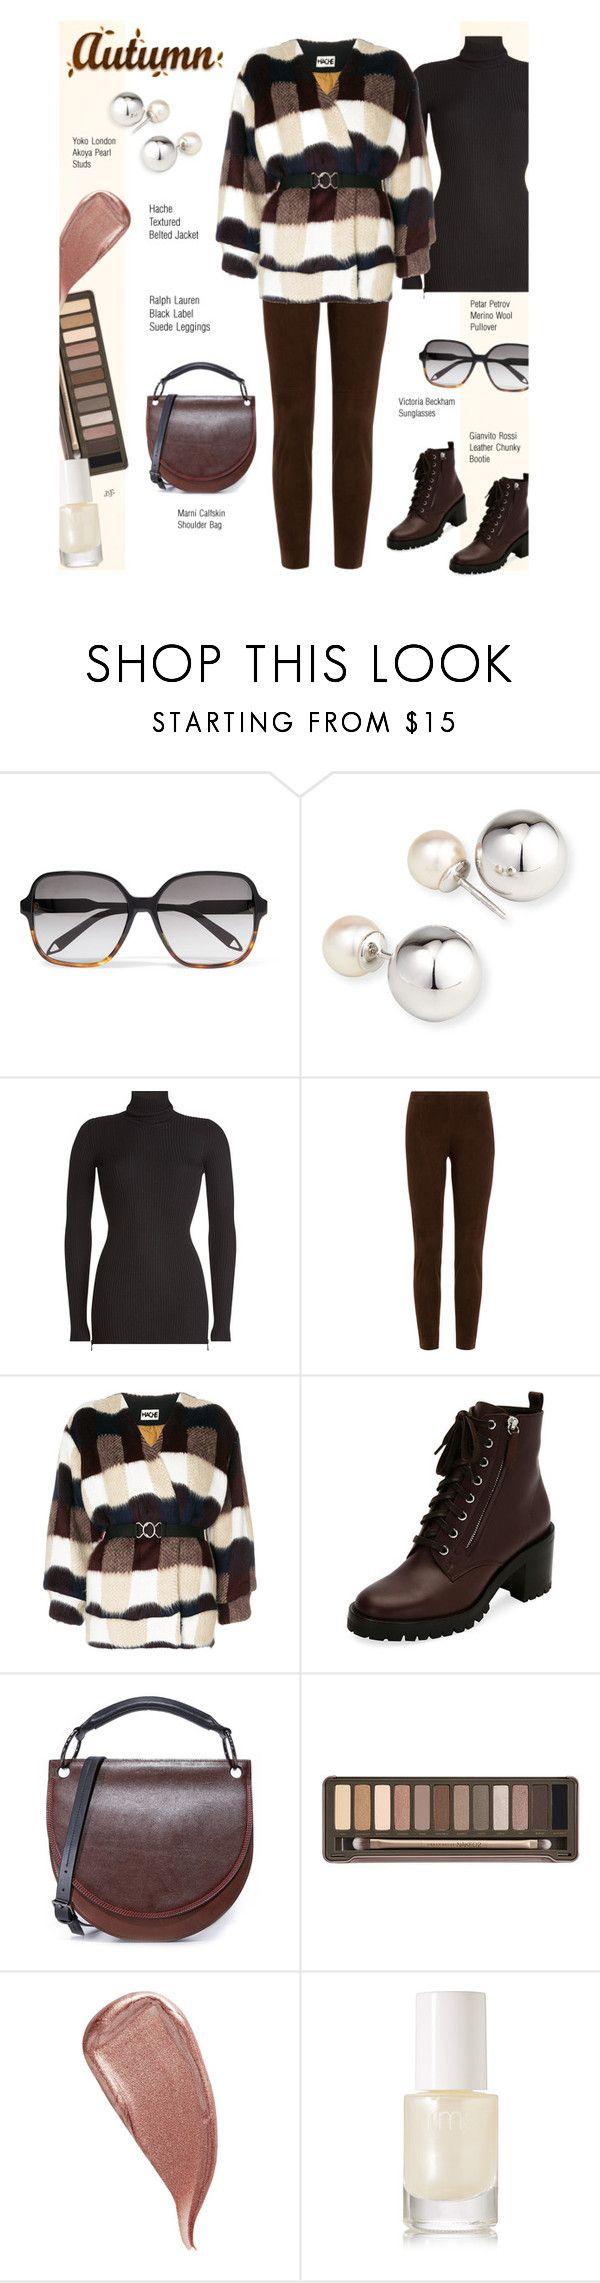 """Untitled #1337"" by louise-stuart ❤ liked on Polyvore featuring Victoria Beckham, Yoko London, Petar Petrov, Ralph Lauren Black Label, Hache, Gianvito Rossi, Marni, Urban Decay, Kevyn Aucoin and rms beauty"